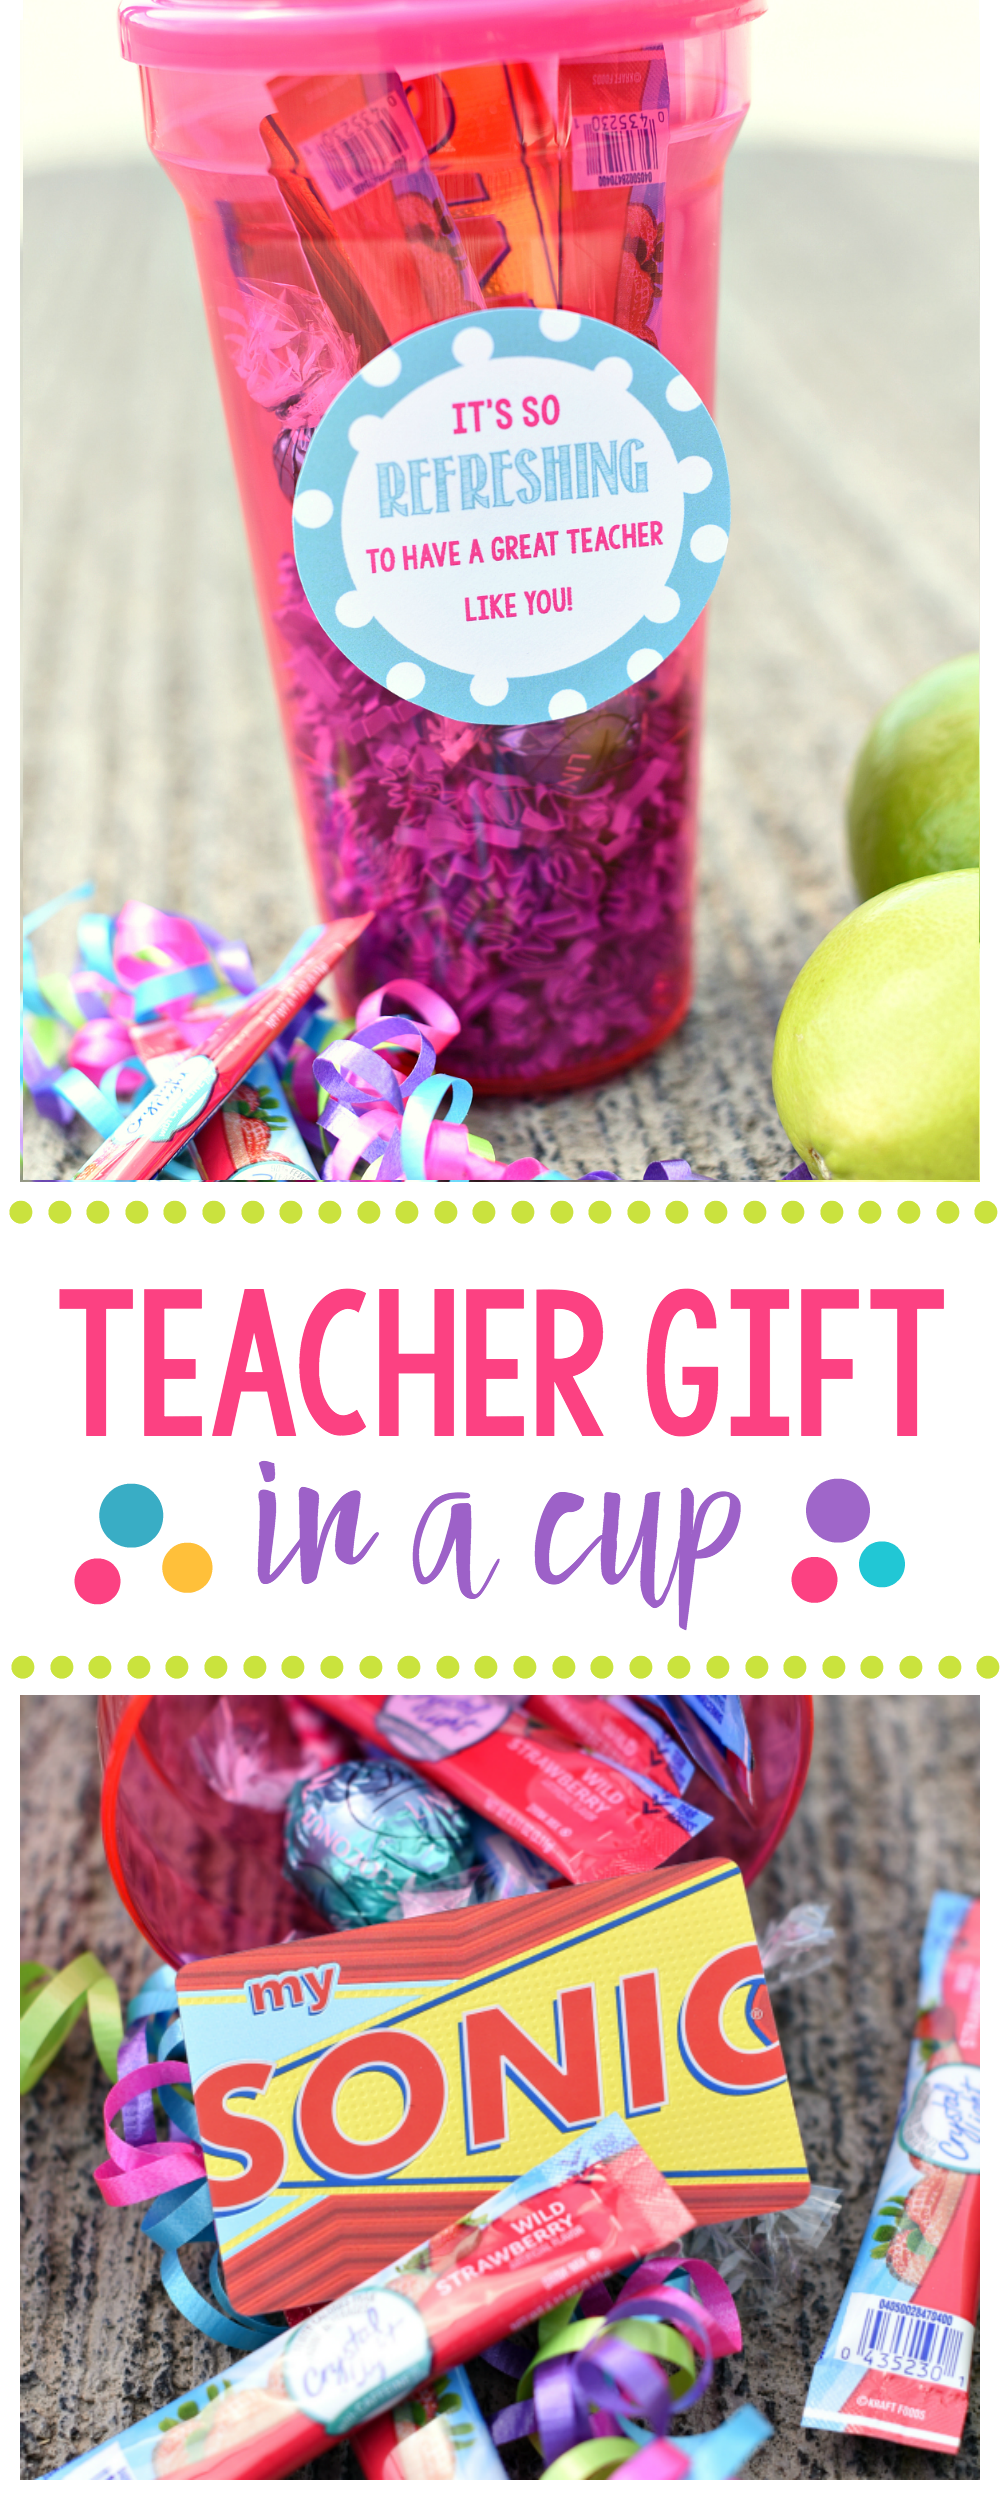 Refreshing and fun teacher gift in a cup fun squared cute teacher appreciation gift idea fill a cup full of fun for the teacher and negle